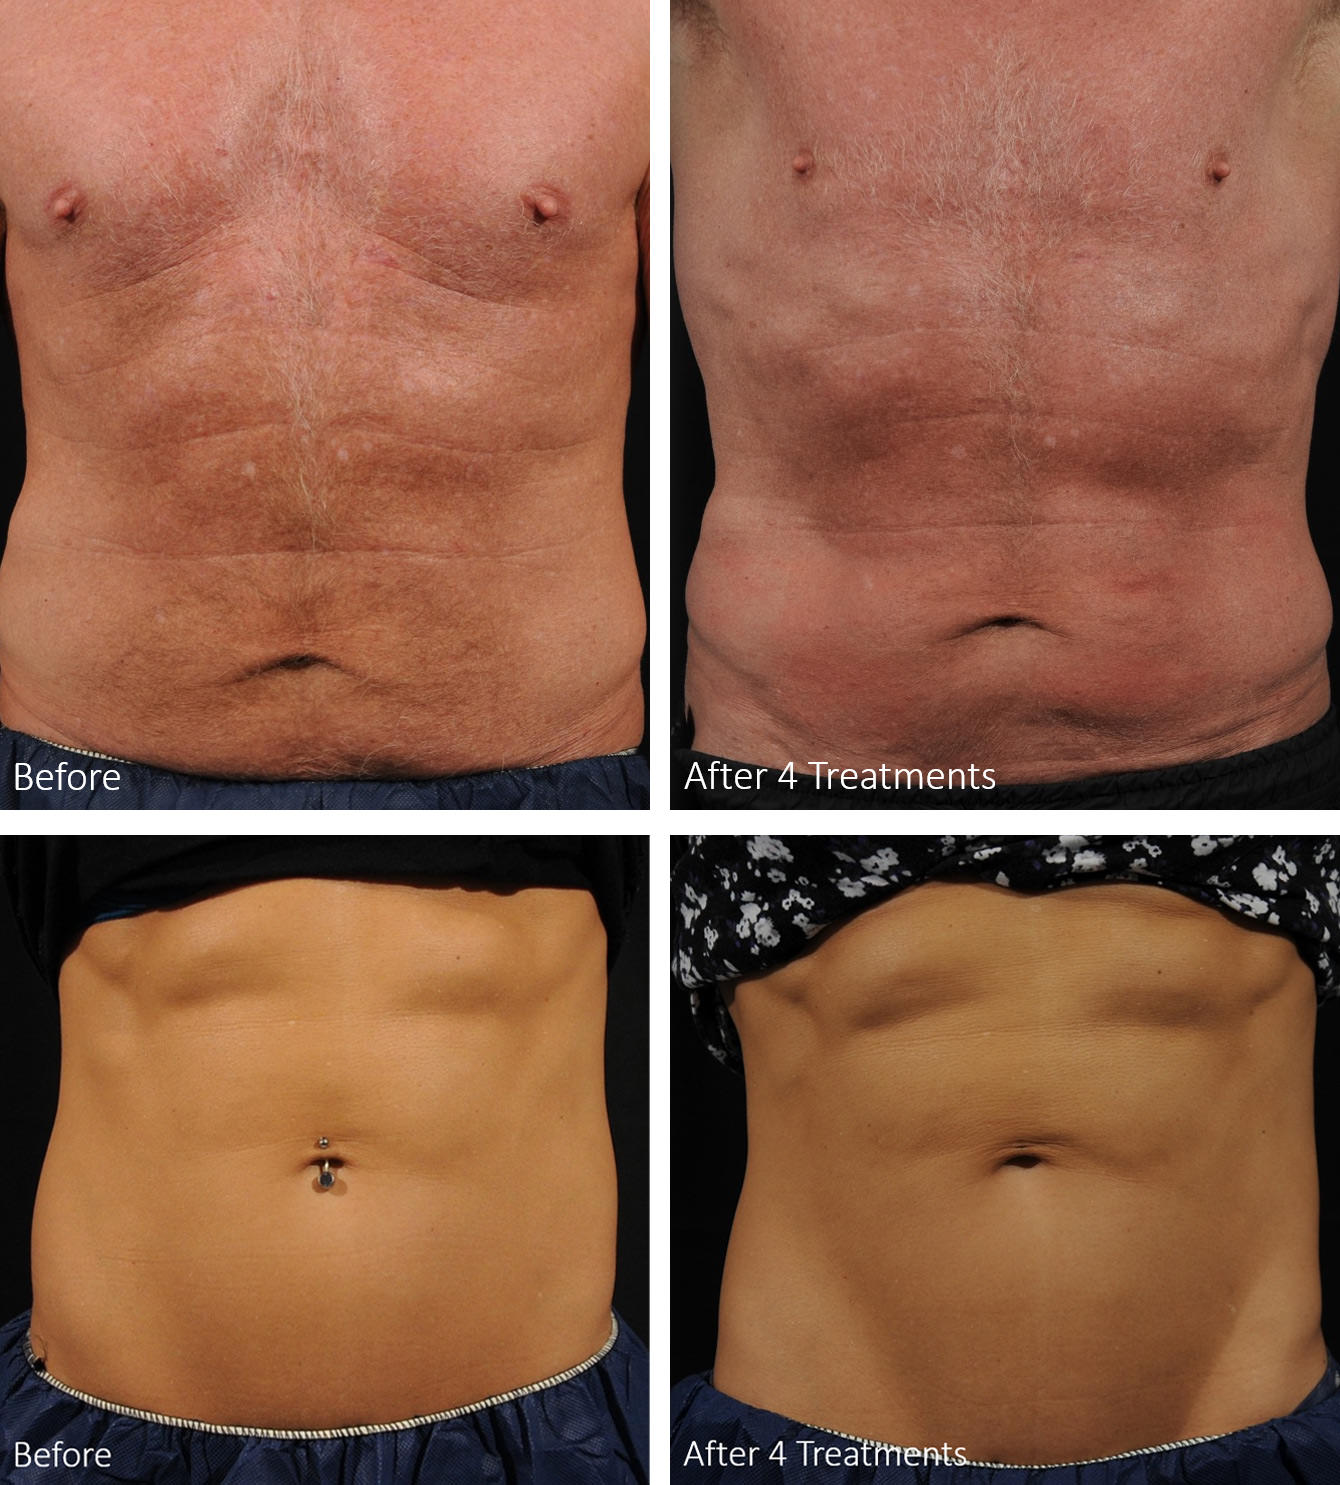 Male and female patients before and after 4 treatment photos